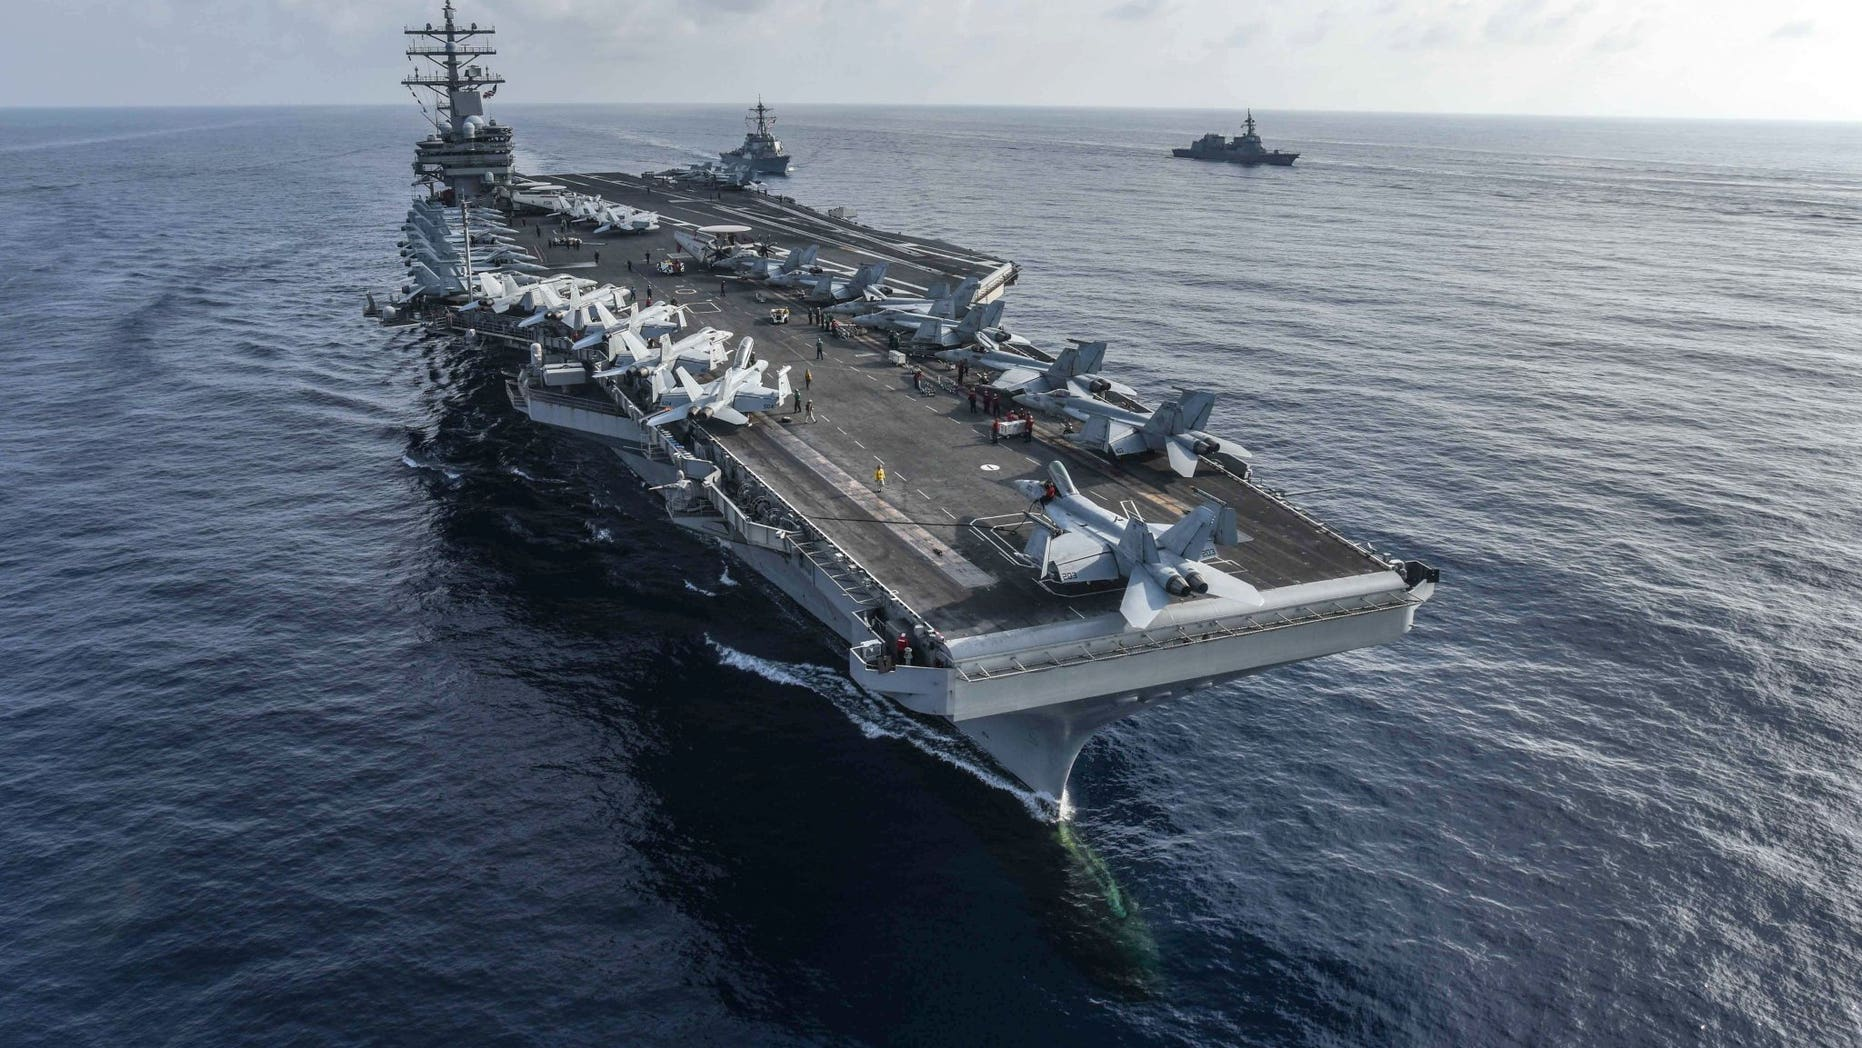 The F/A 18 crew was located by a USS Ronald Reagan search and rescue aircraft.